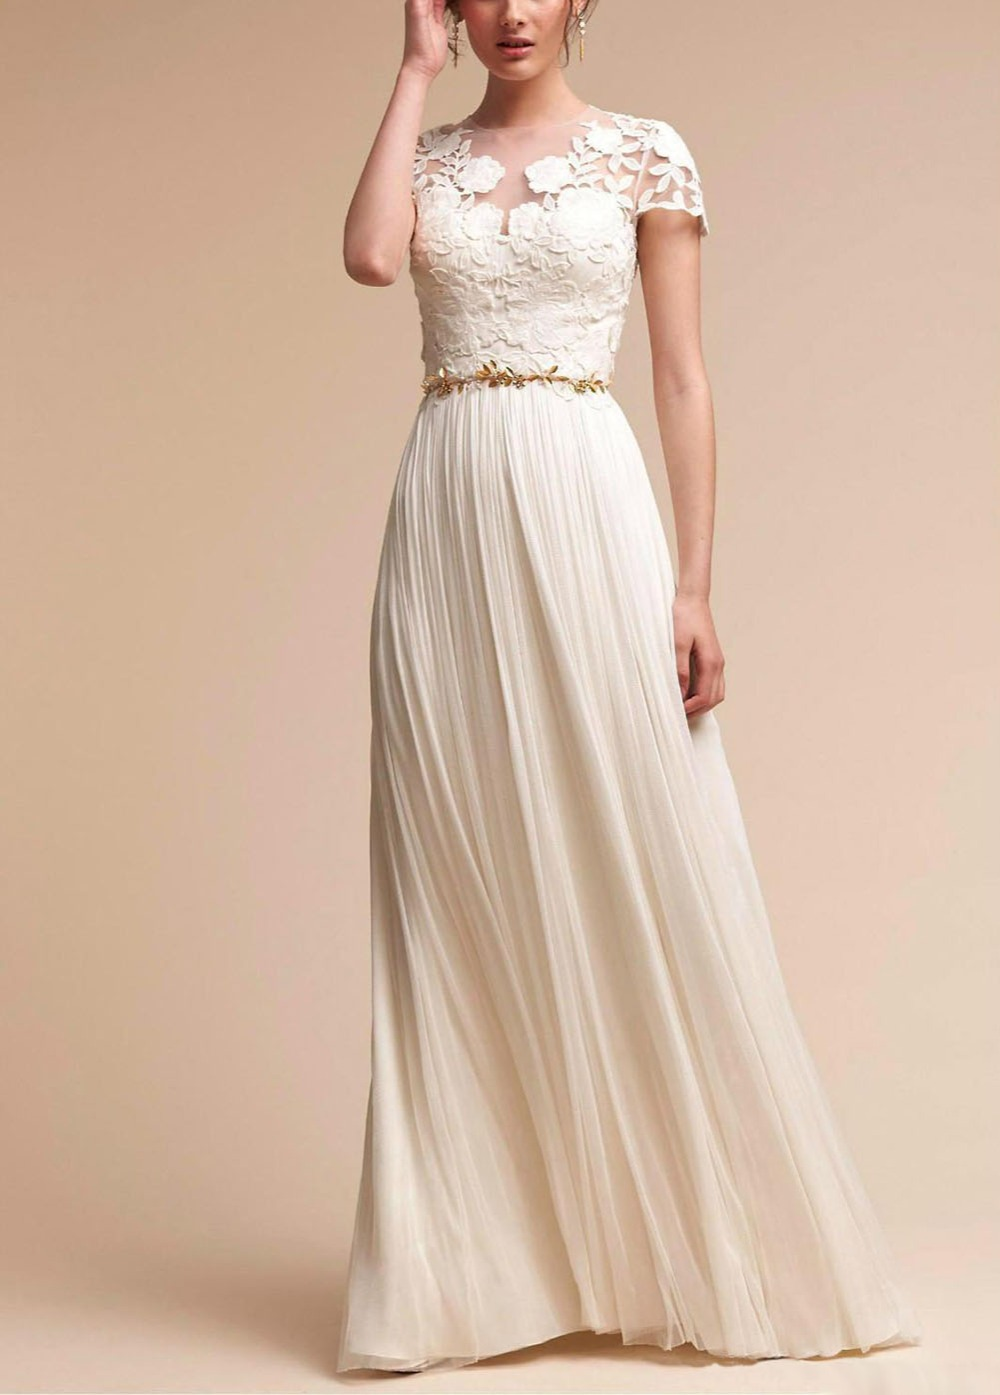 Setwell 2019 Jewel A line Beach Wedding Dress Short Sleeves Pleated Lace Chiffon Bridal Gown With Belt